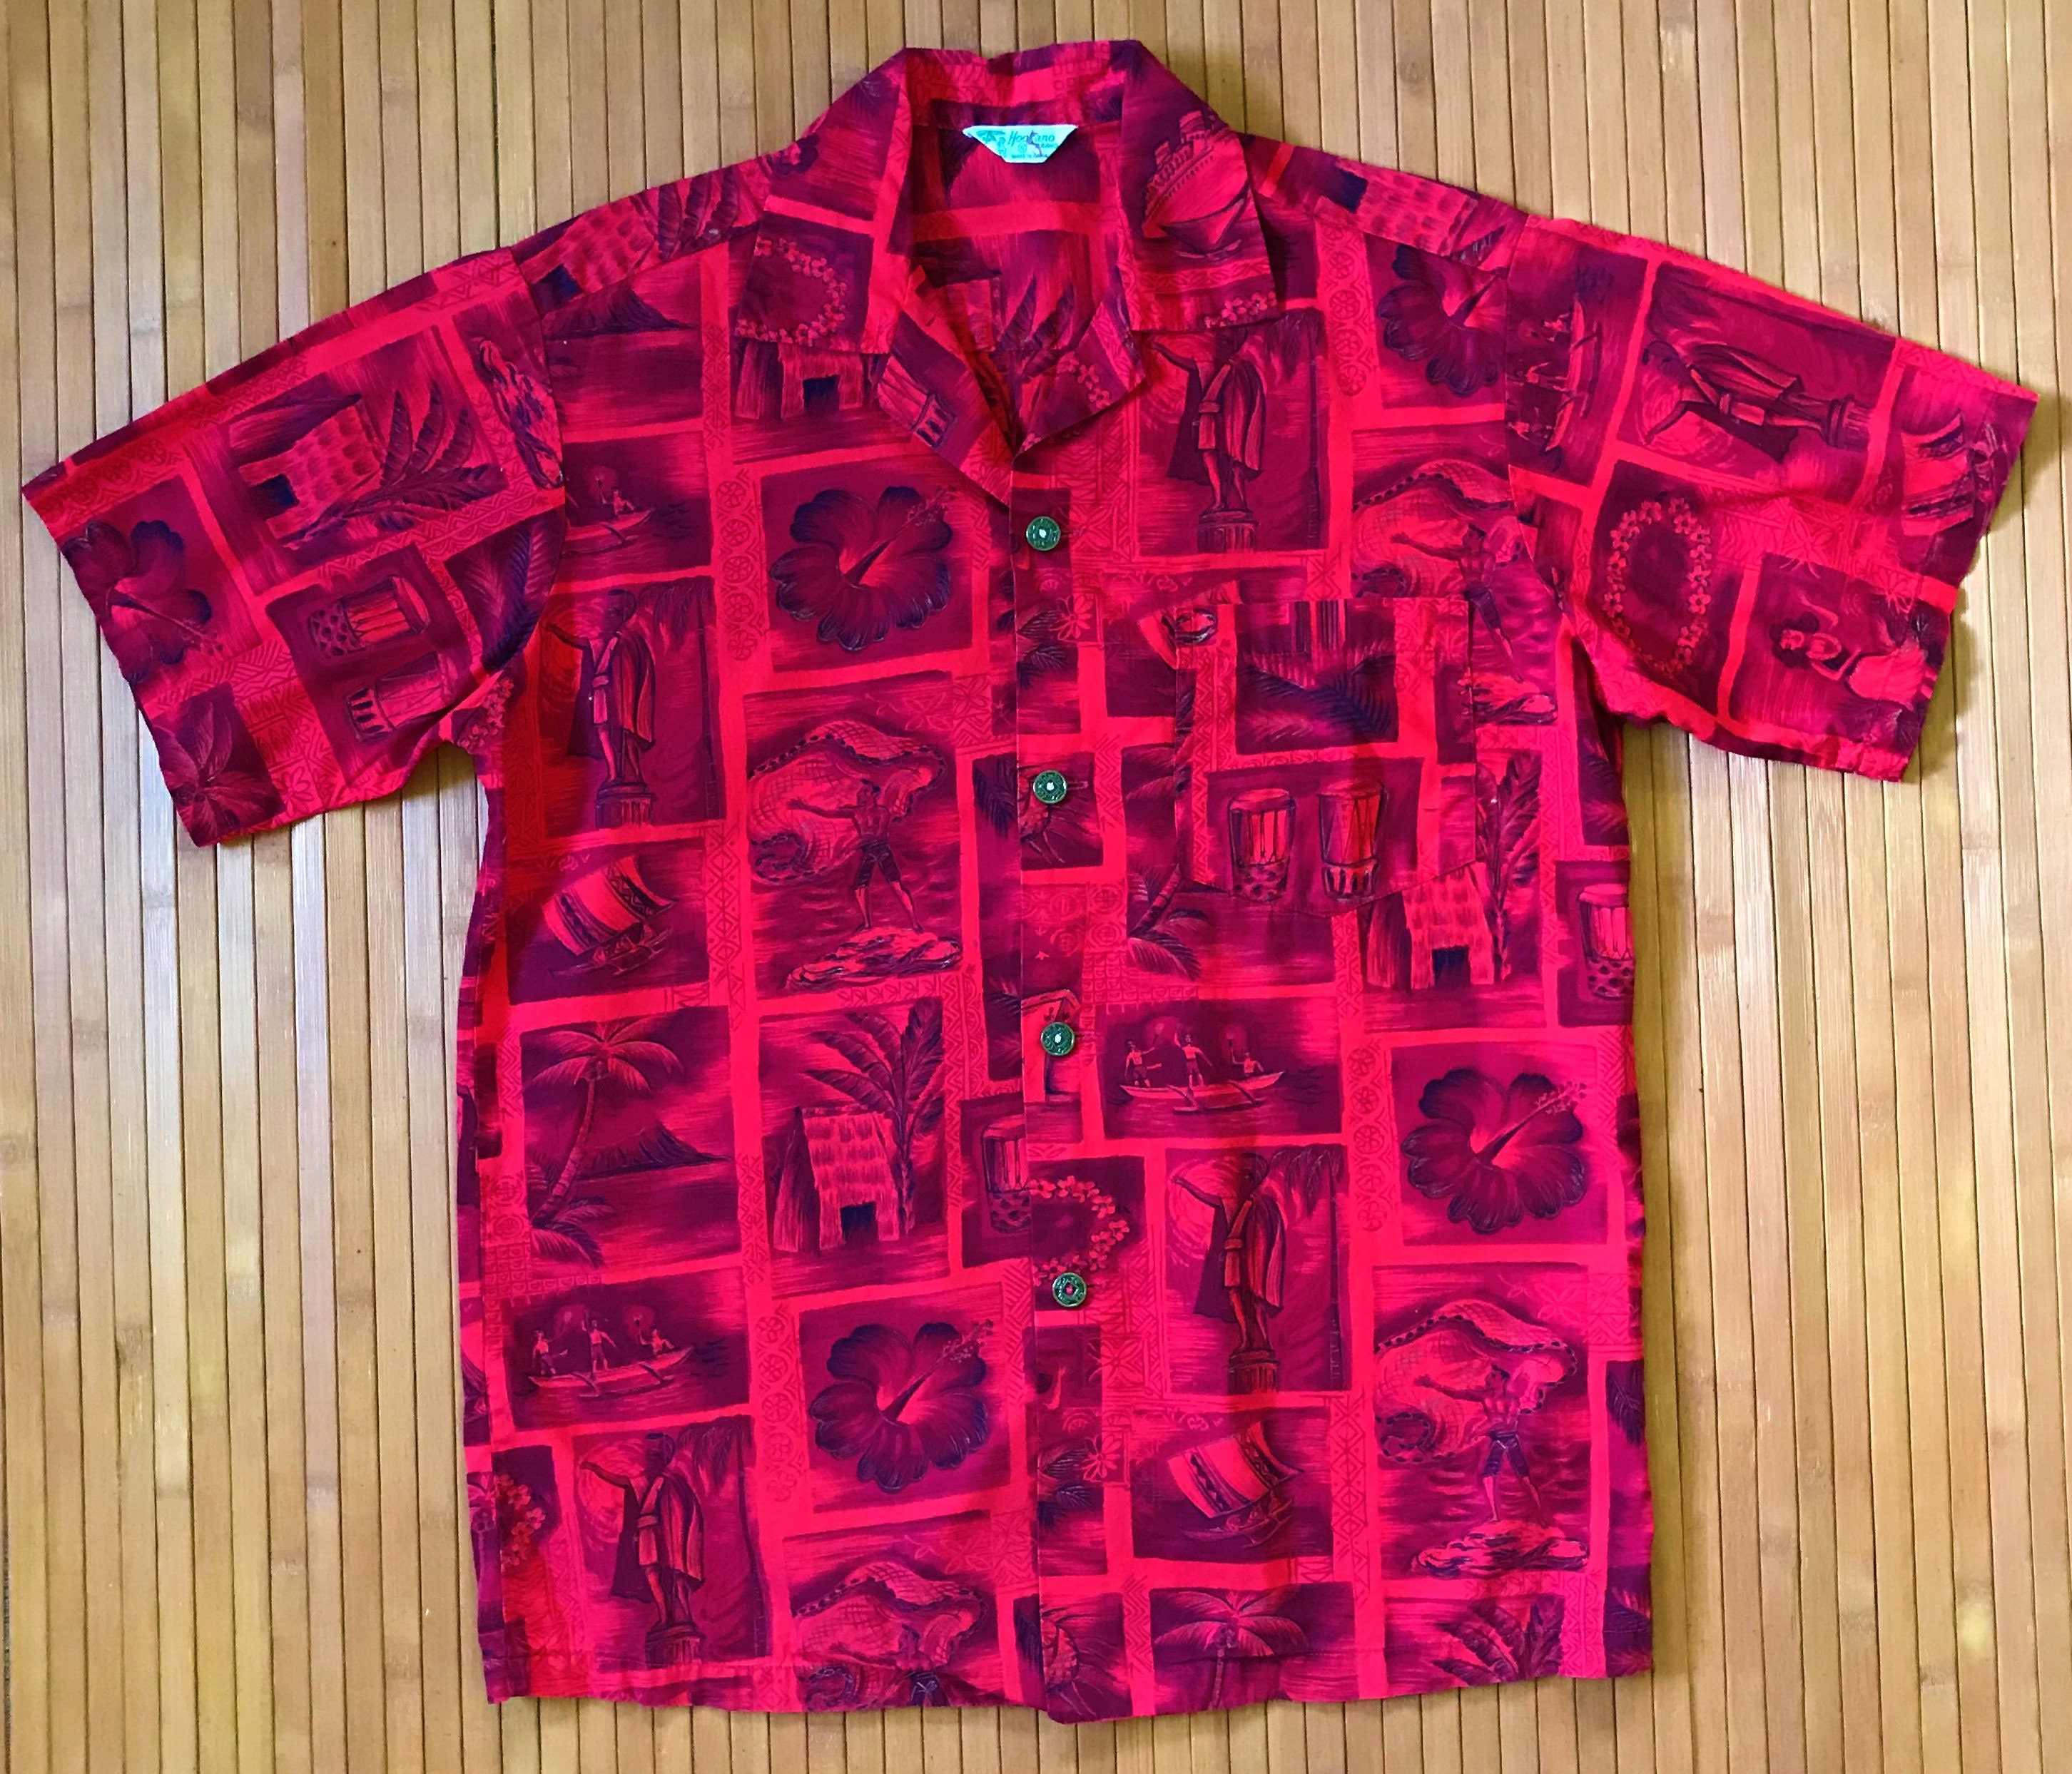 1940s Men's Shirts, Sweaters, Vests Mens Vintage 40S-50S Hookano Picturesque Hawaiian Aloha Shirt-Sm-The Hana Shirt Co $18.95 AT vintagedancer.com